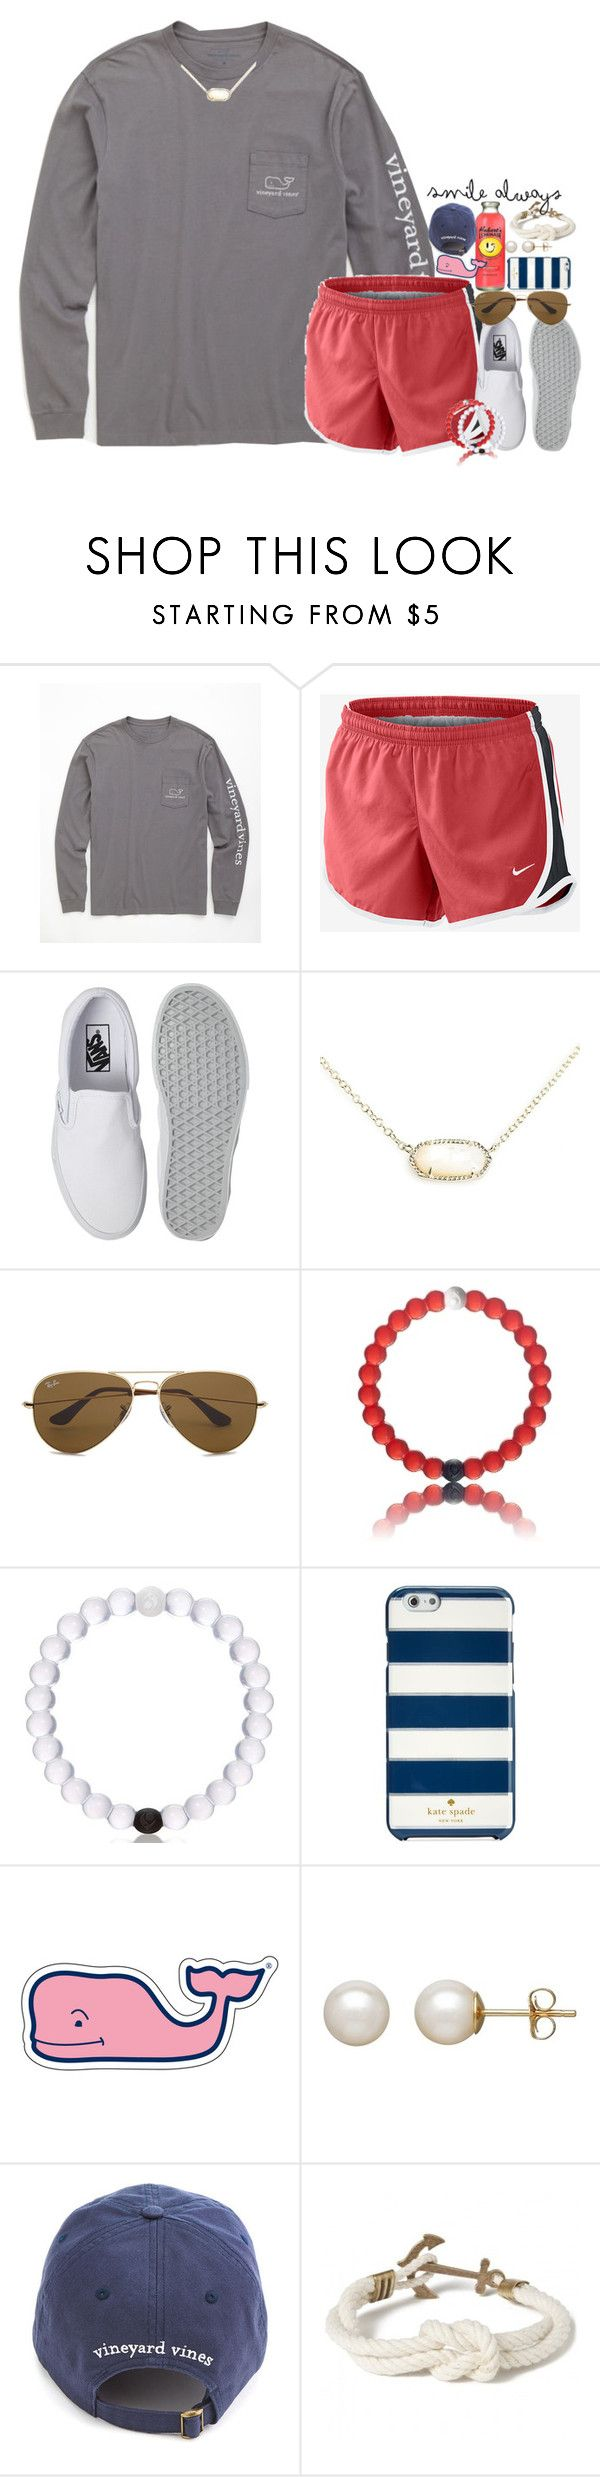 I got some dresses by kate-elizabethh ❤ liked on Polyvore featuring Vineyard Vines, NIKE, Vans, Kendra Scott, Ray-Ban, Kate Spade, Honora and Kiel James Patrick